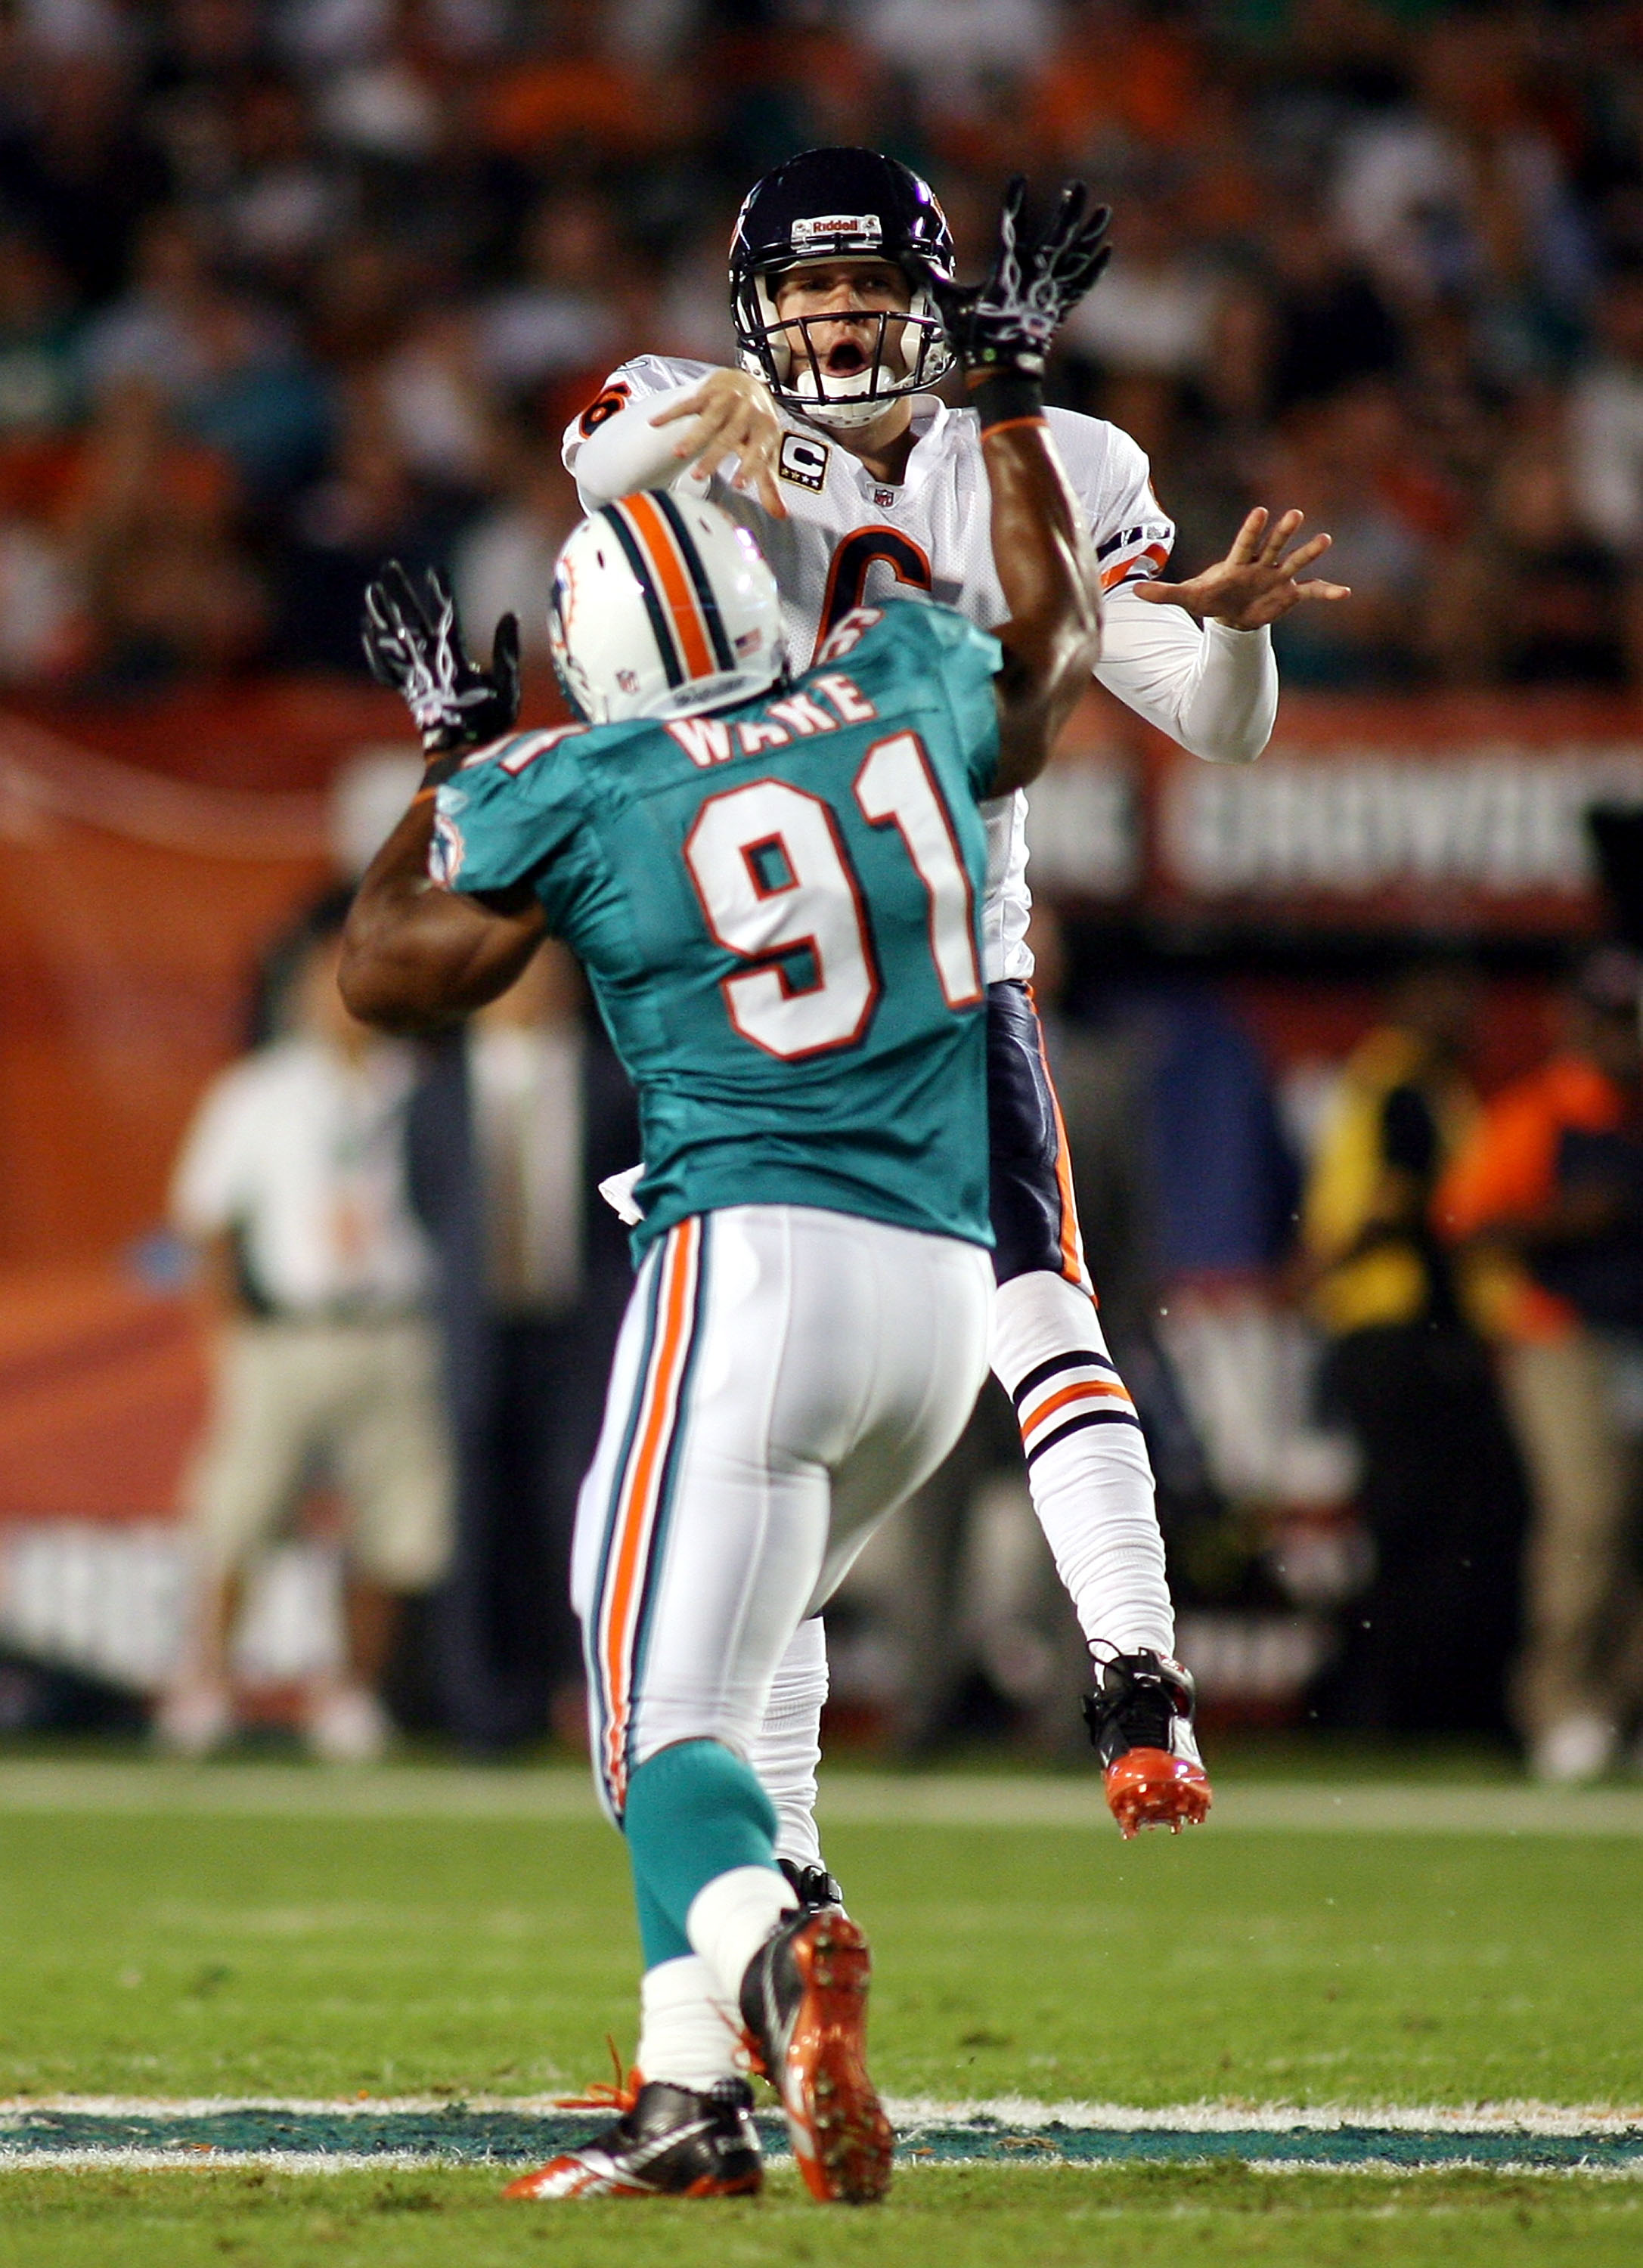 MIAMI - NOVEMBER 18:  Quarterback Jay Cutler #6 of the Chicago Bears is preasured by linebacker Cameron wake #91 of the Miami Dolphins at Sun Life Stadium on November 18, 2010 in Miami, Florida.  (Photo by Marc Serota/Getty Images)